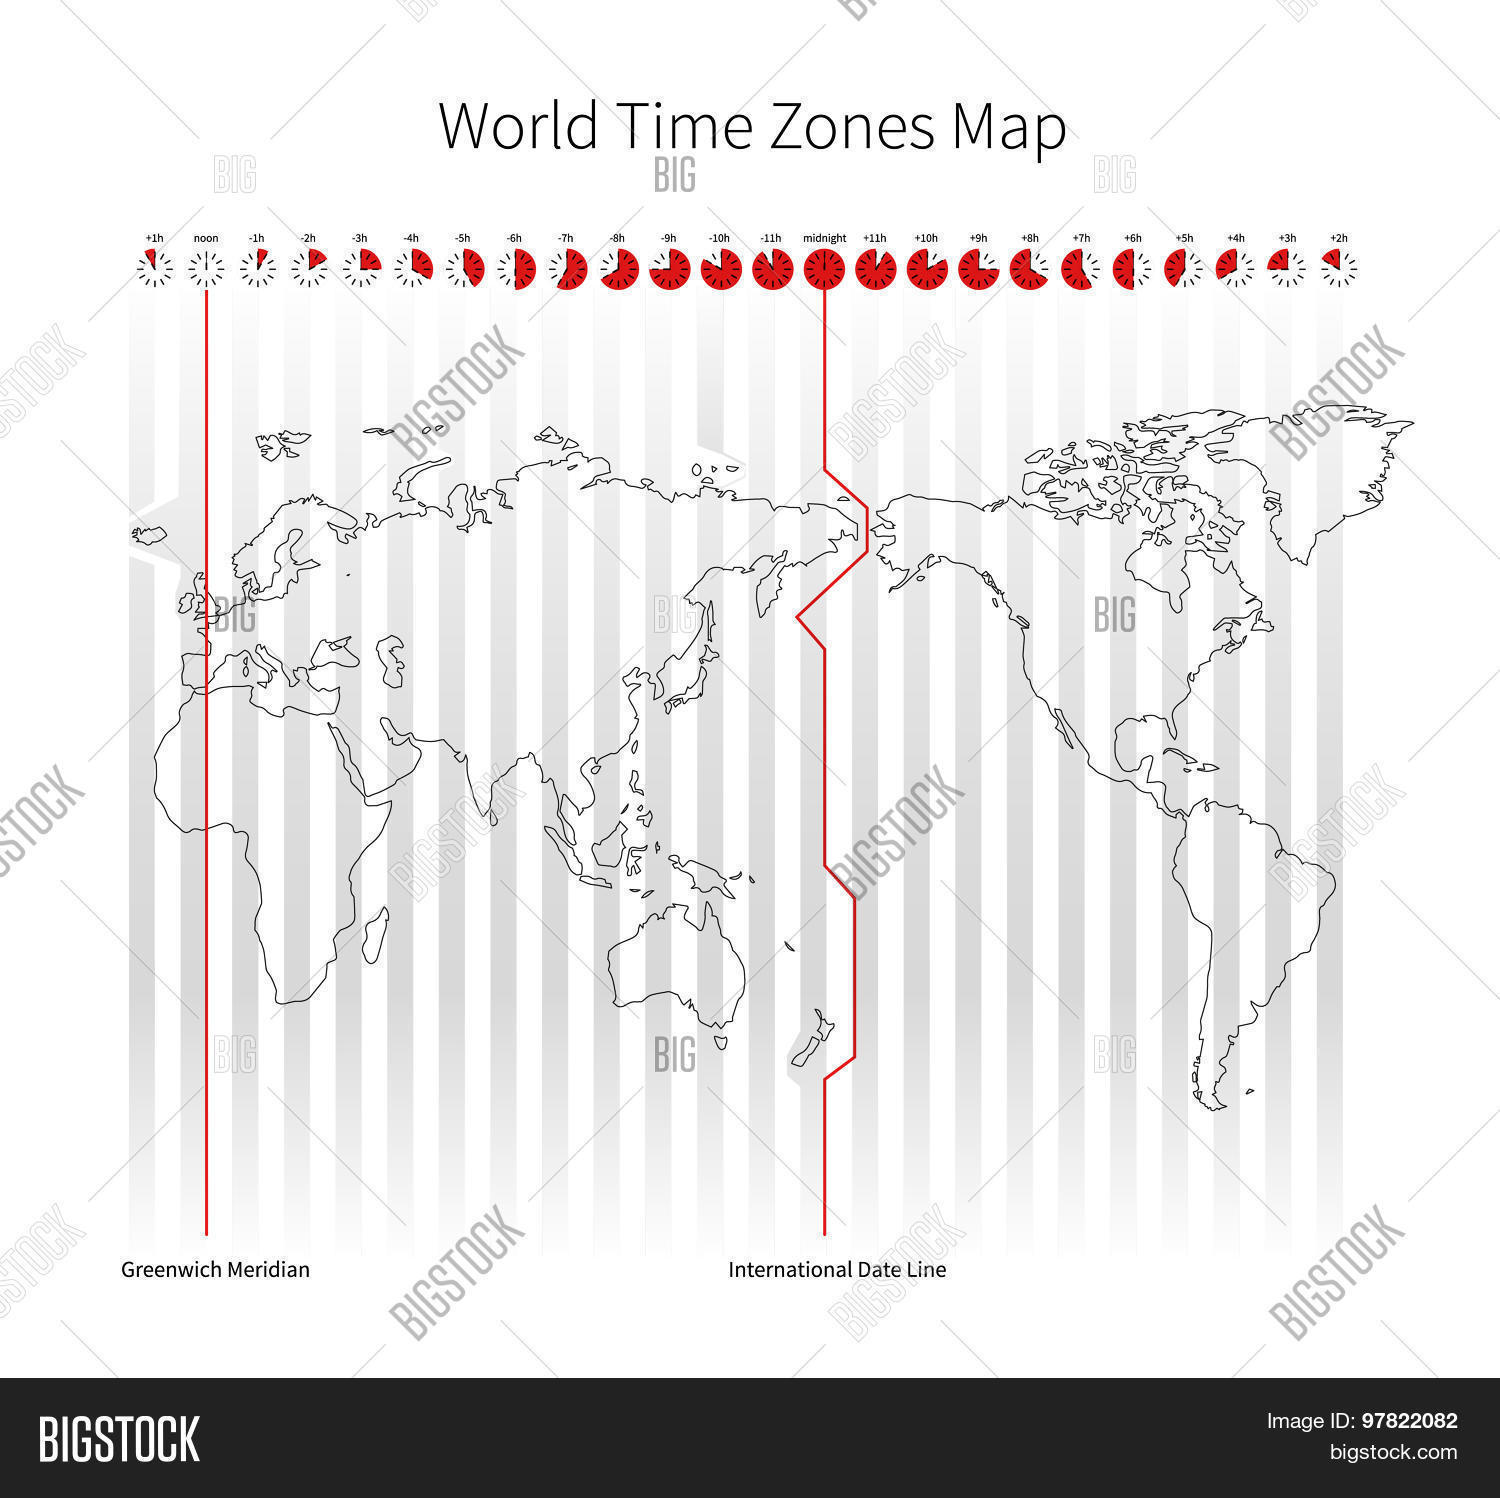 World Time Zones Map Vector & Photo (Free Trial) | Bigstock